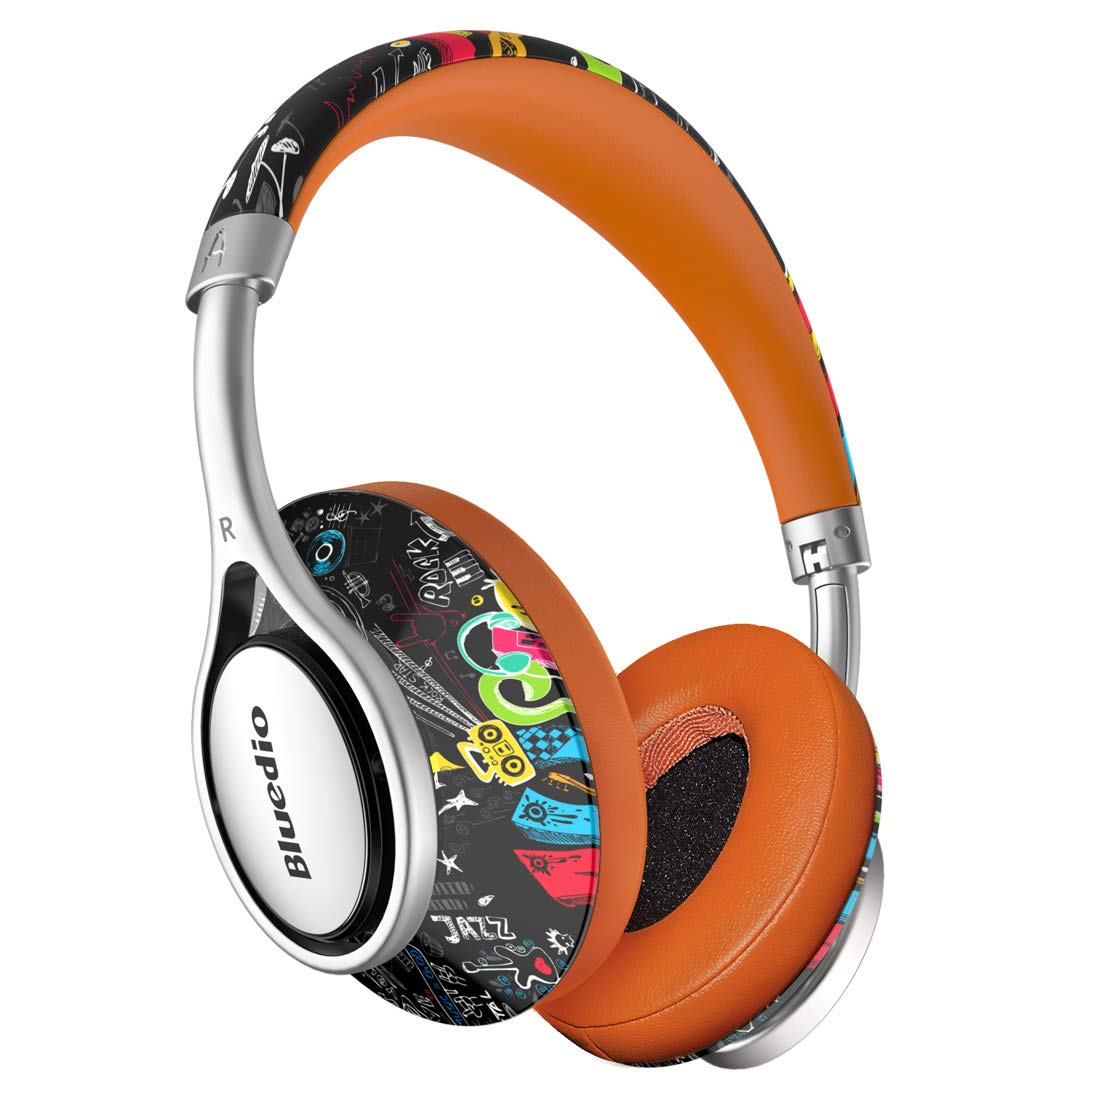 Vowor A2 (Air) Bluetooth Headphones Over Ear 3D Stereo Chinese Style Stylish Wireless Headset with Microphone, Fashionable and Foldable, Surround Sound for PC & Cell Phones Long Standby (Graffiti)